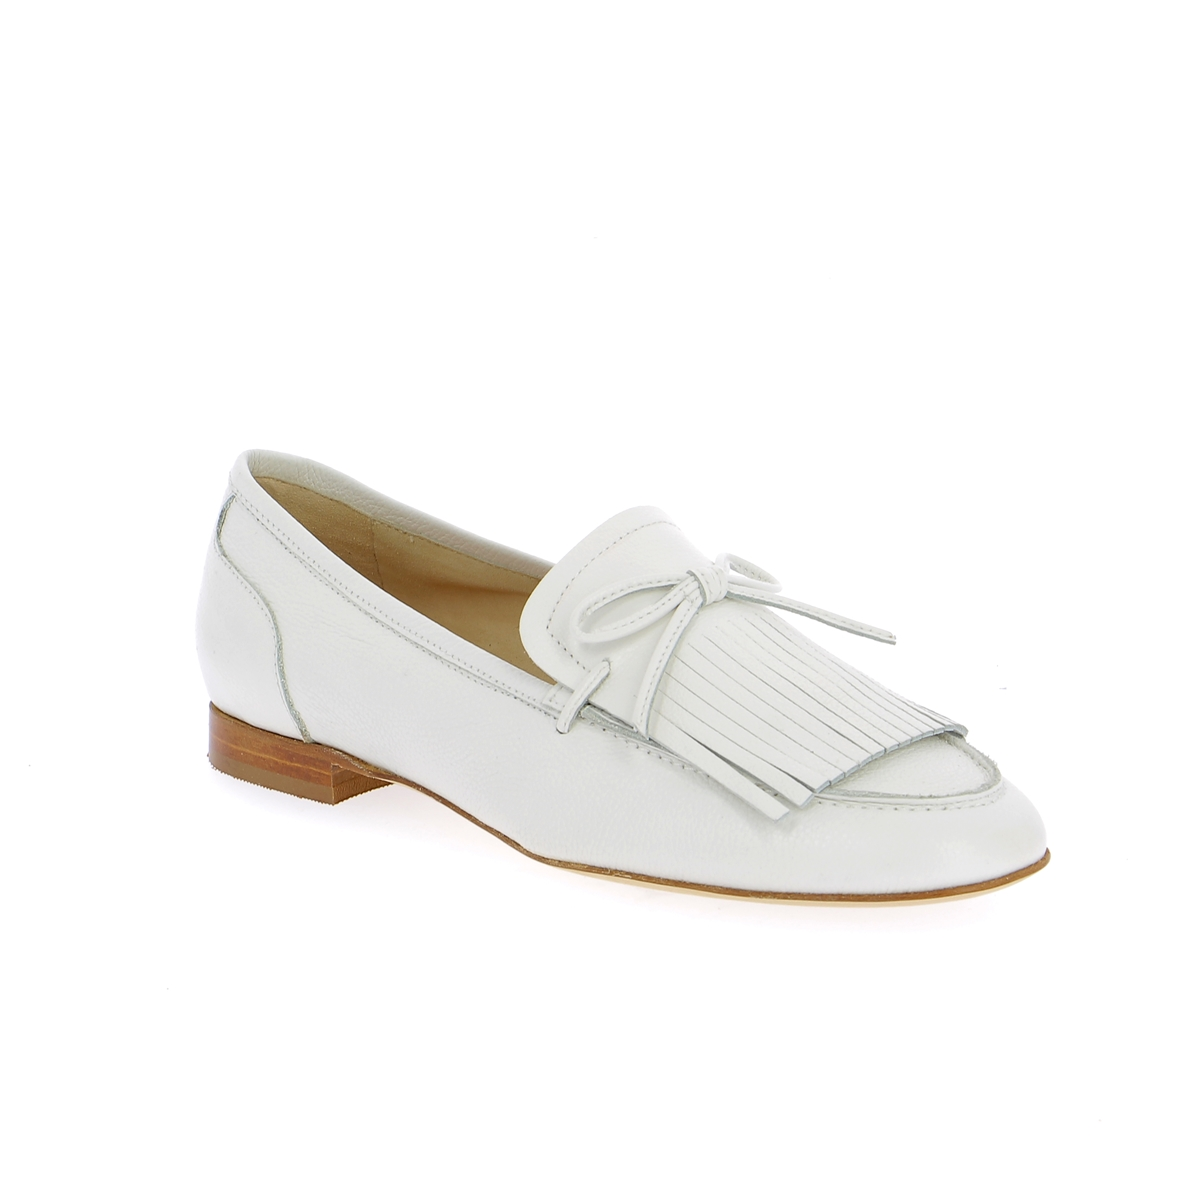 Luca Grossi Moccassins blanc